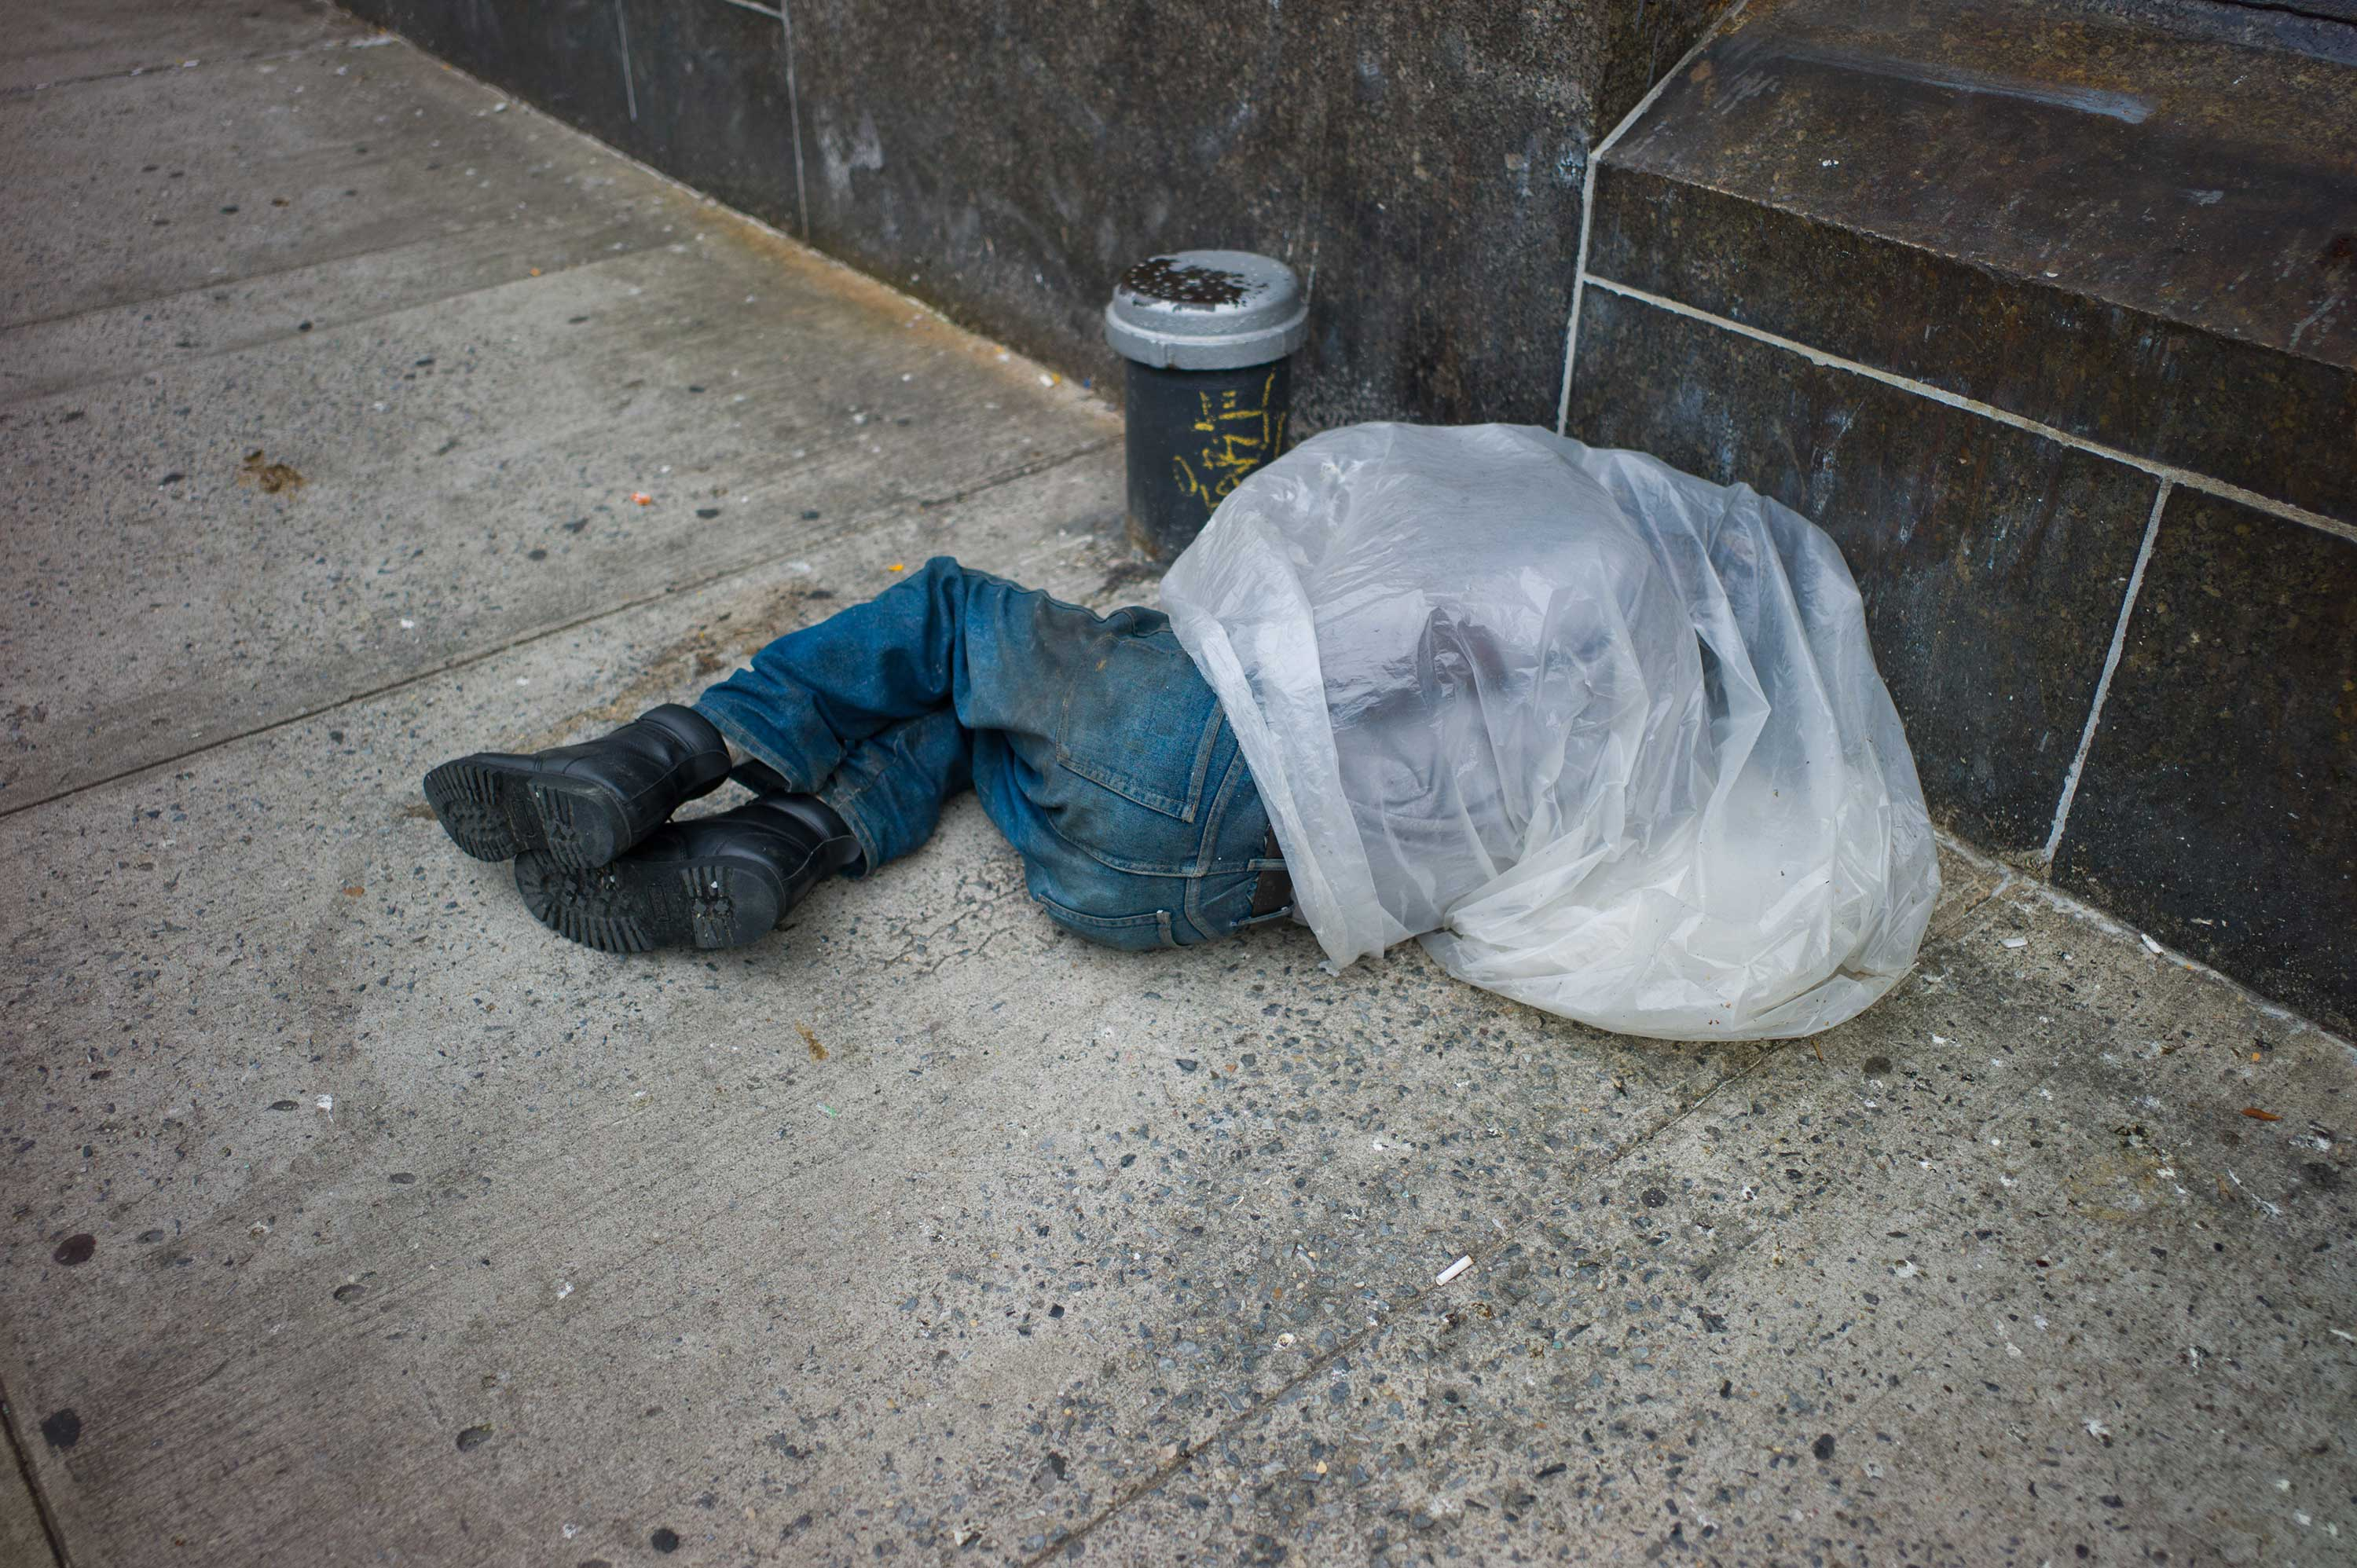 47th Street (Sleeping Bag)